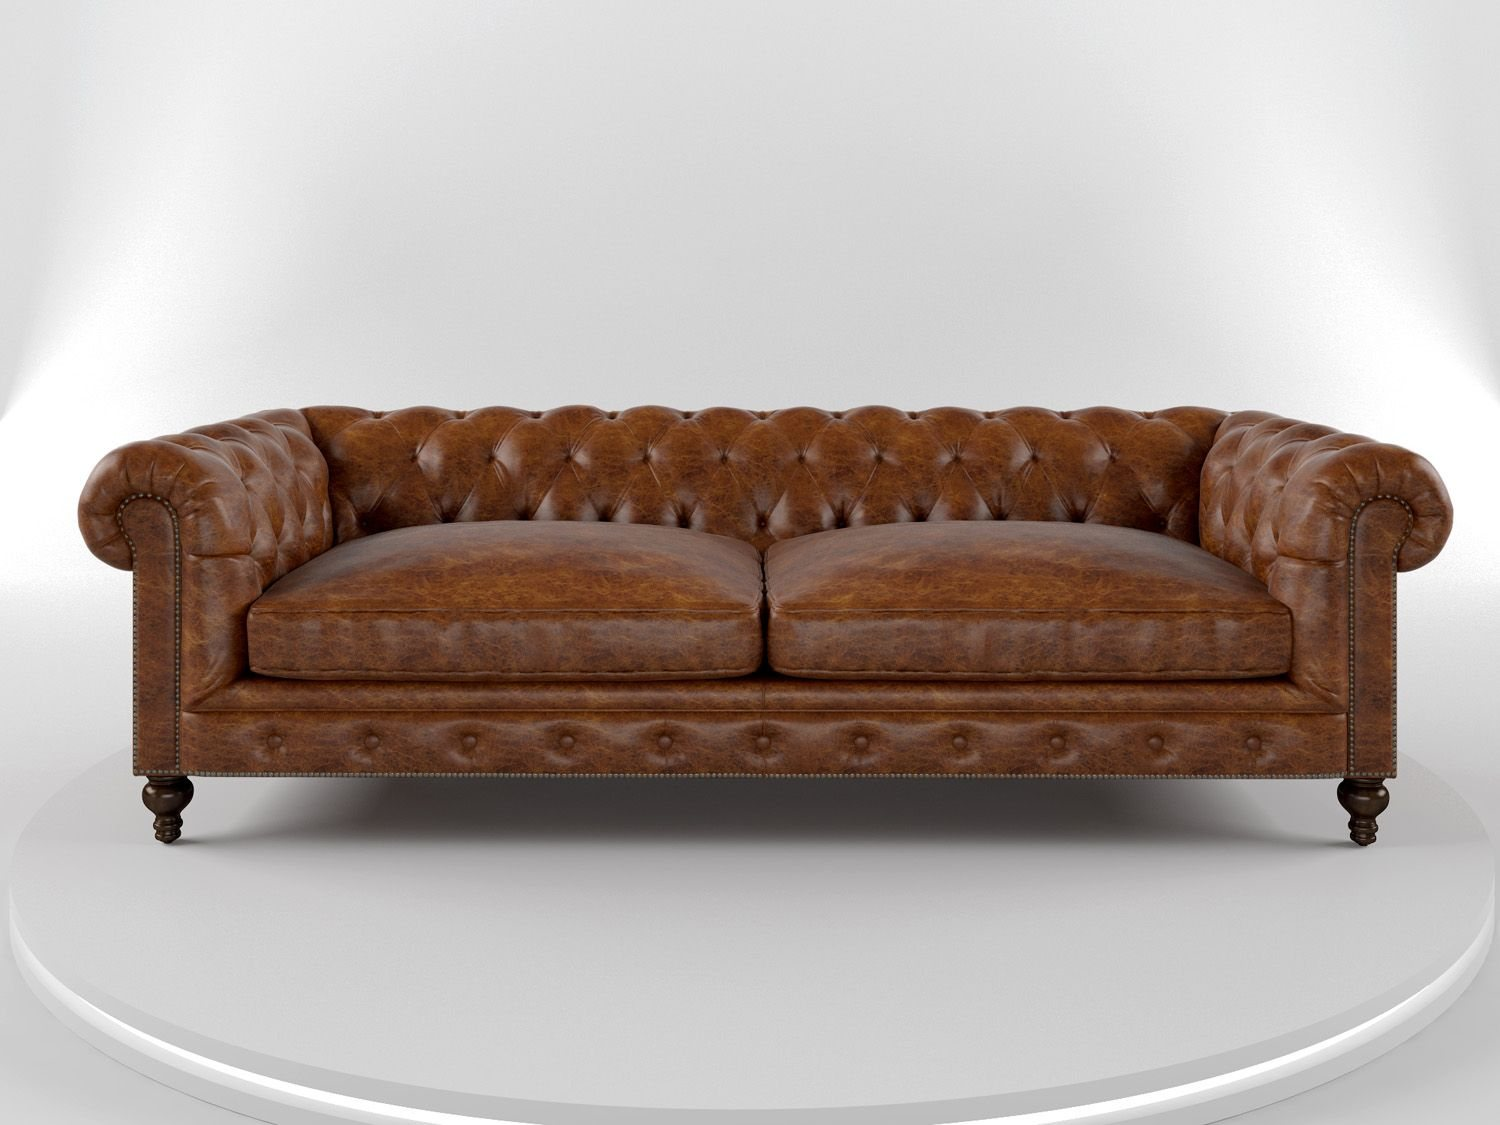 Chesterfield Sofa Texture Chesterfield Tufted Sofa Home Design